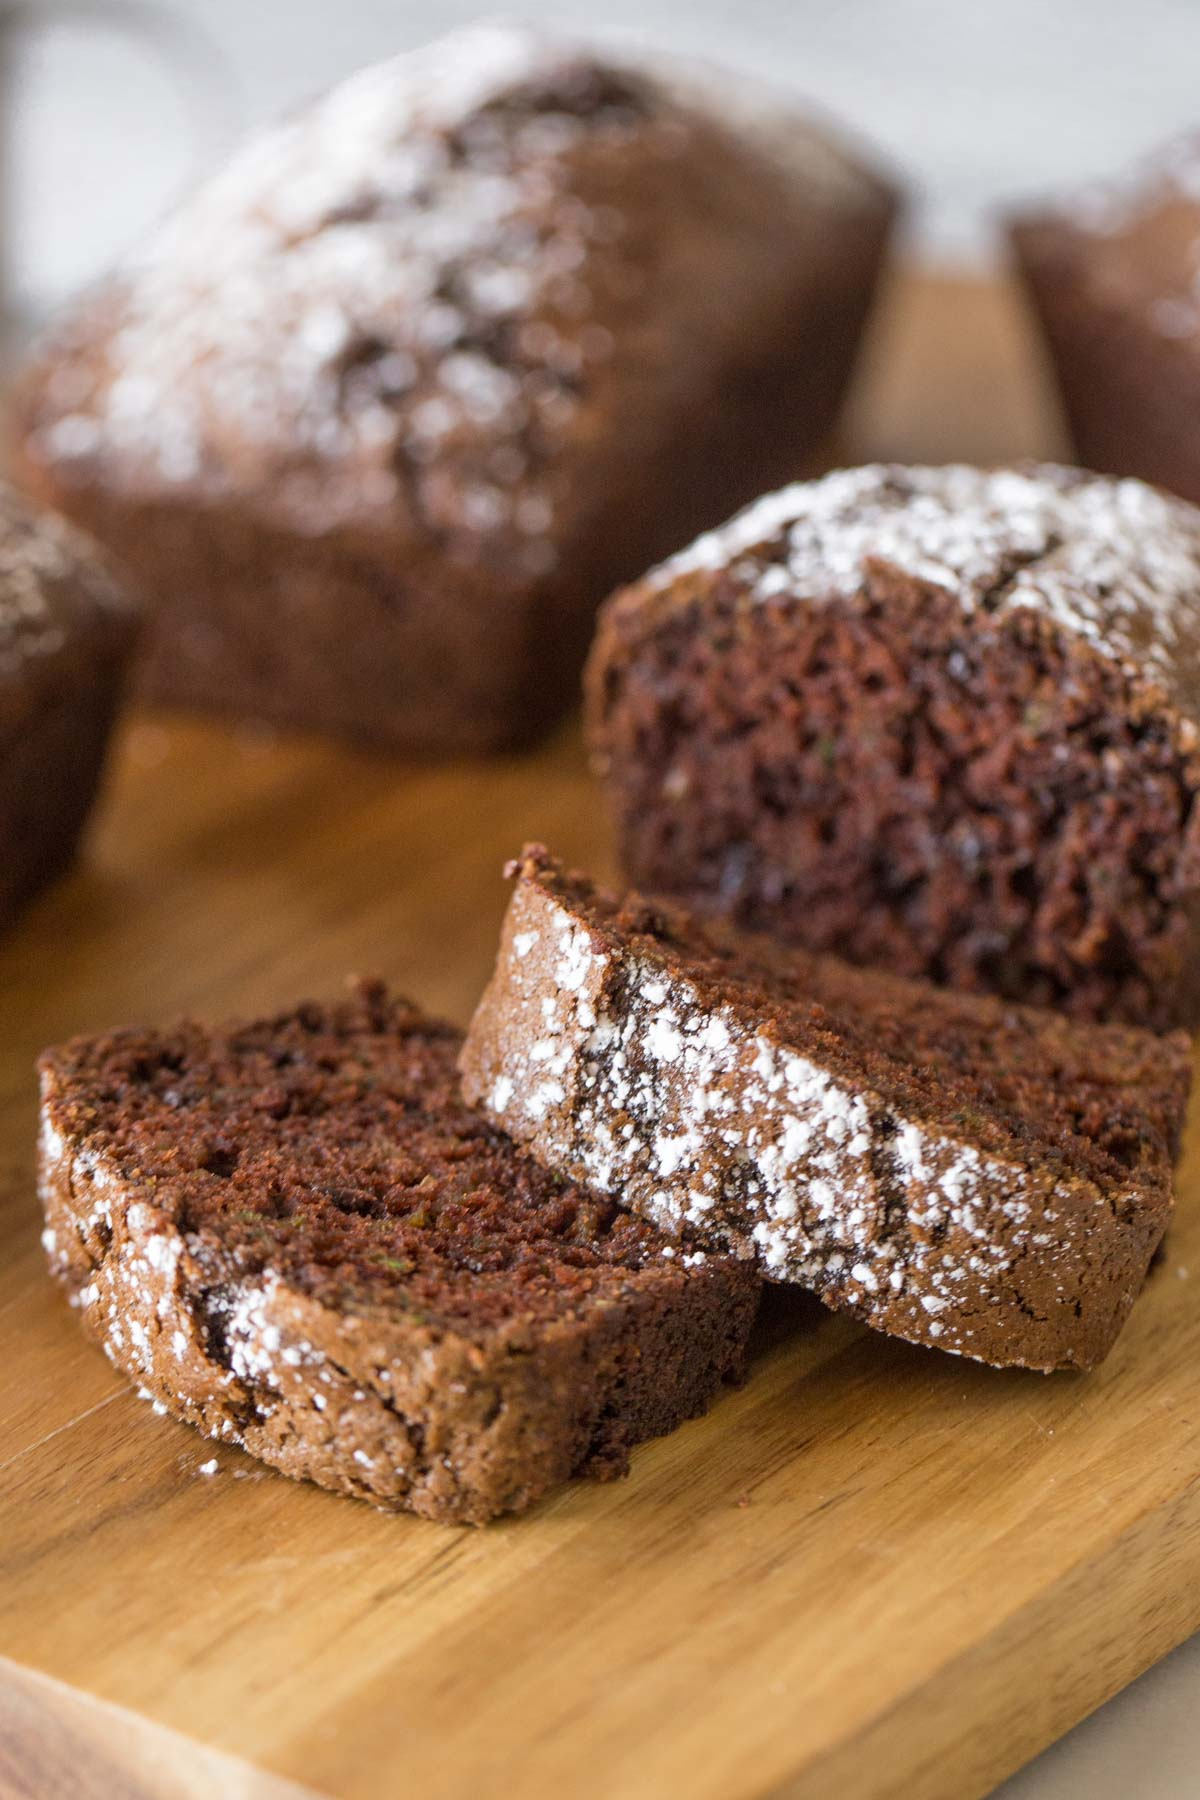 Slices of Chocolate Zucchini Bread on a wooden cutting board.